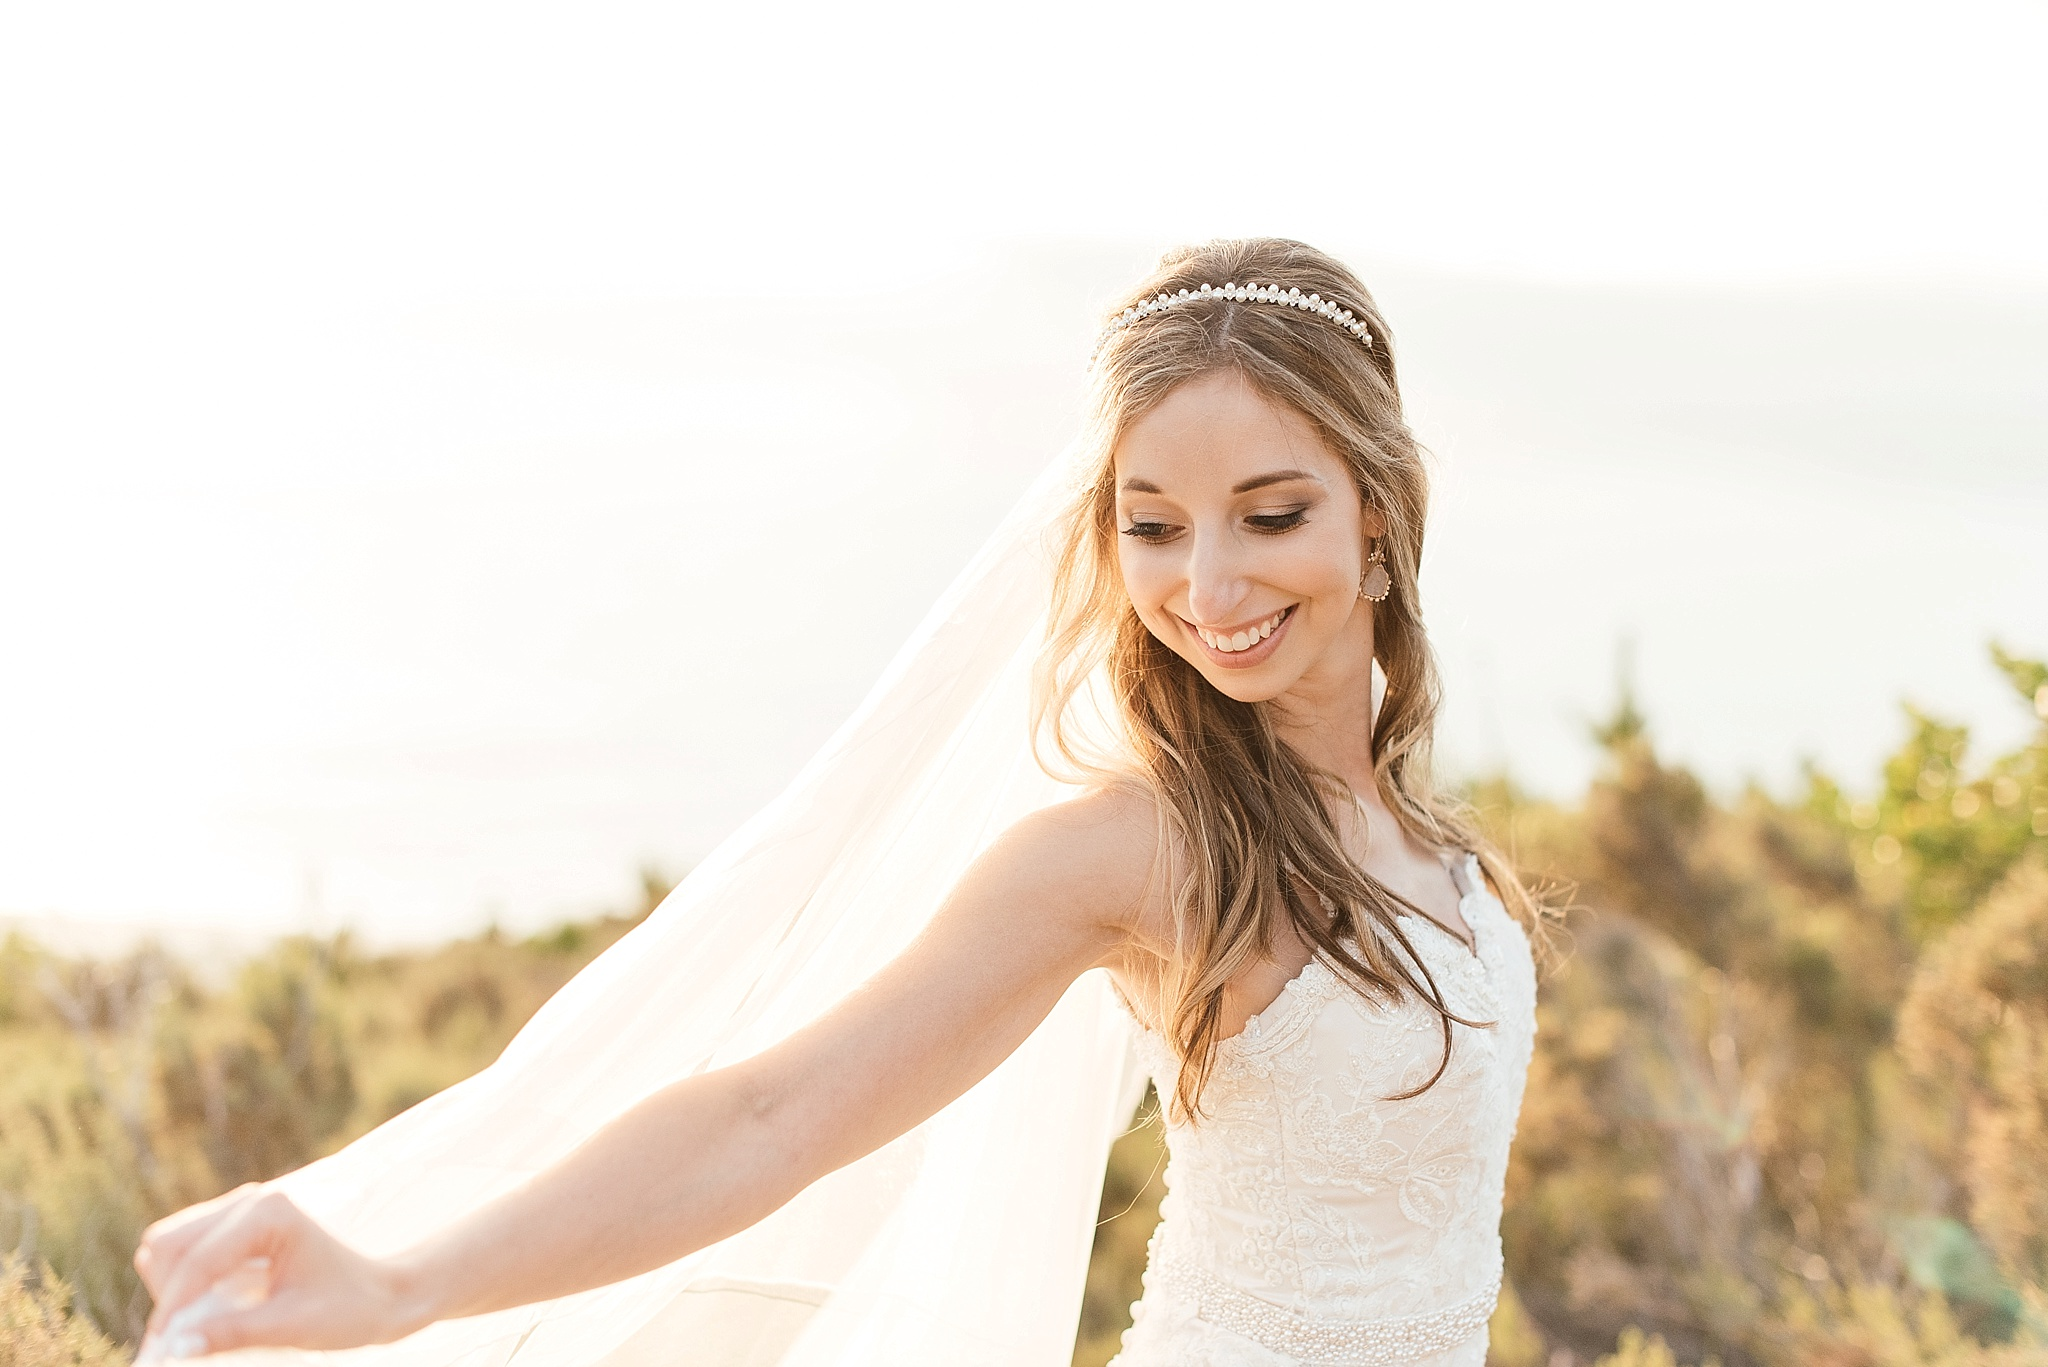 Cape Town Wedding Photographer Darren Bester - SuikerBossie - Stephen and Mikaela_0042.jpg